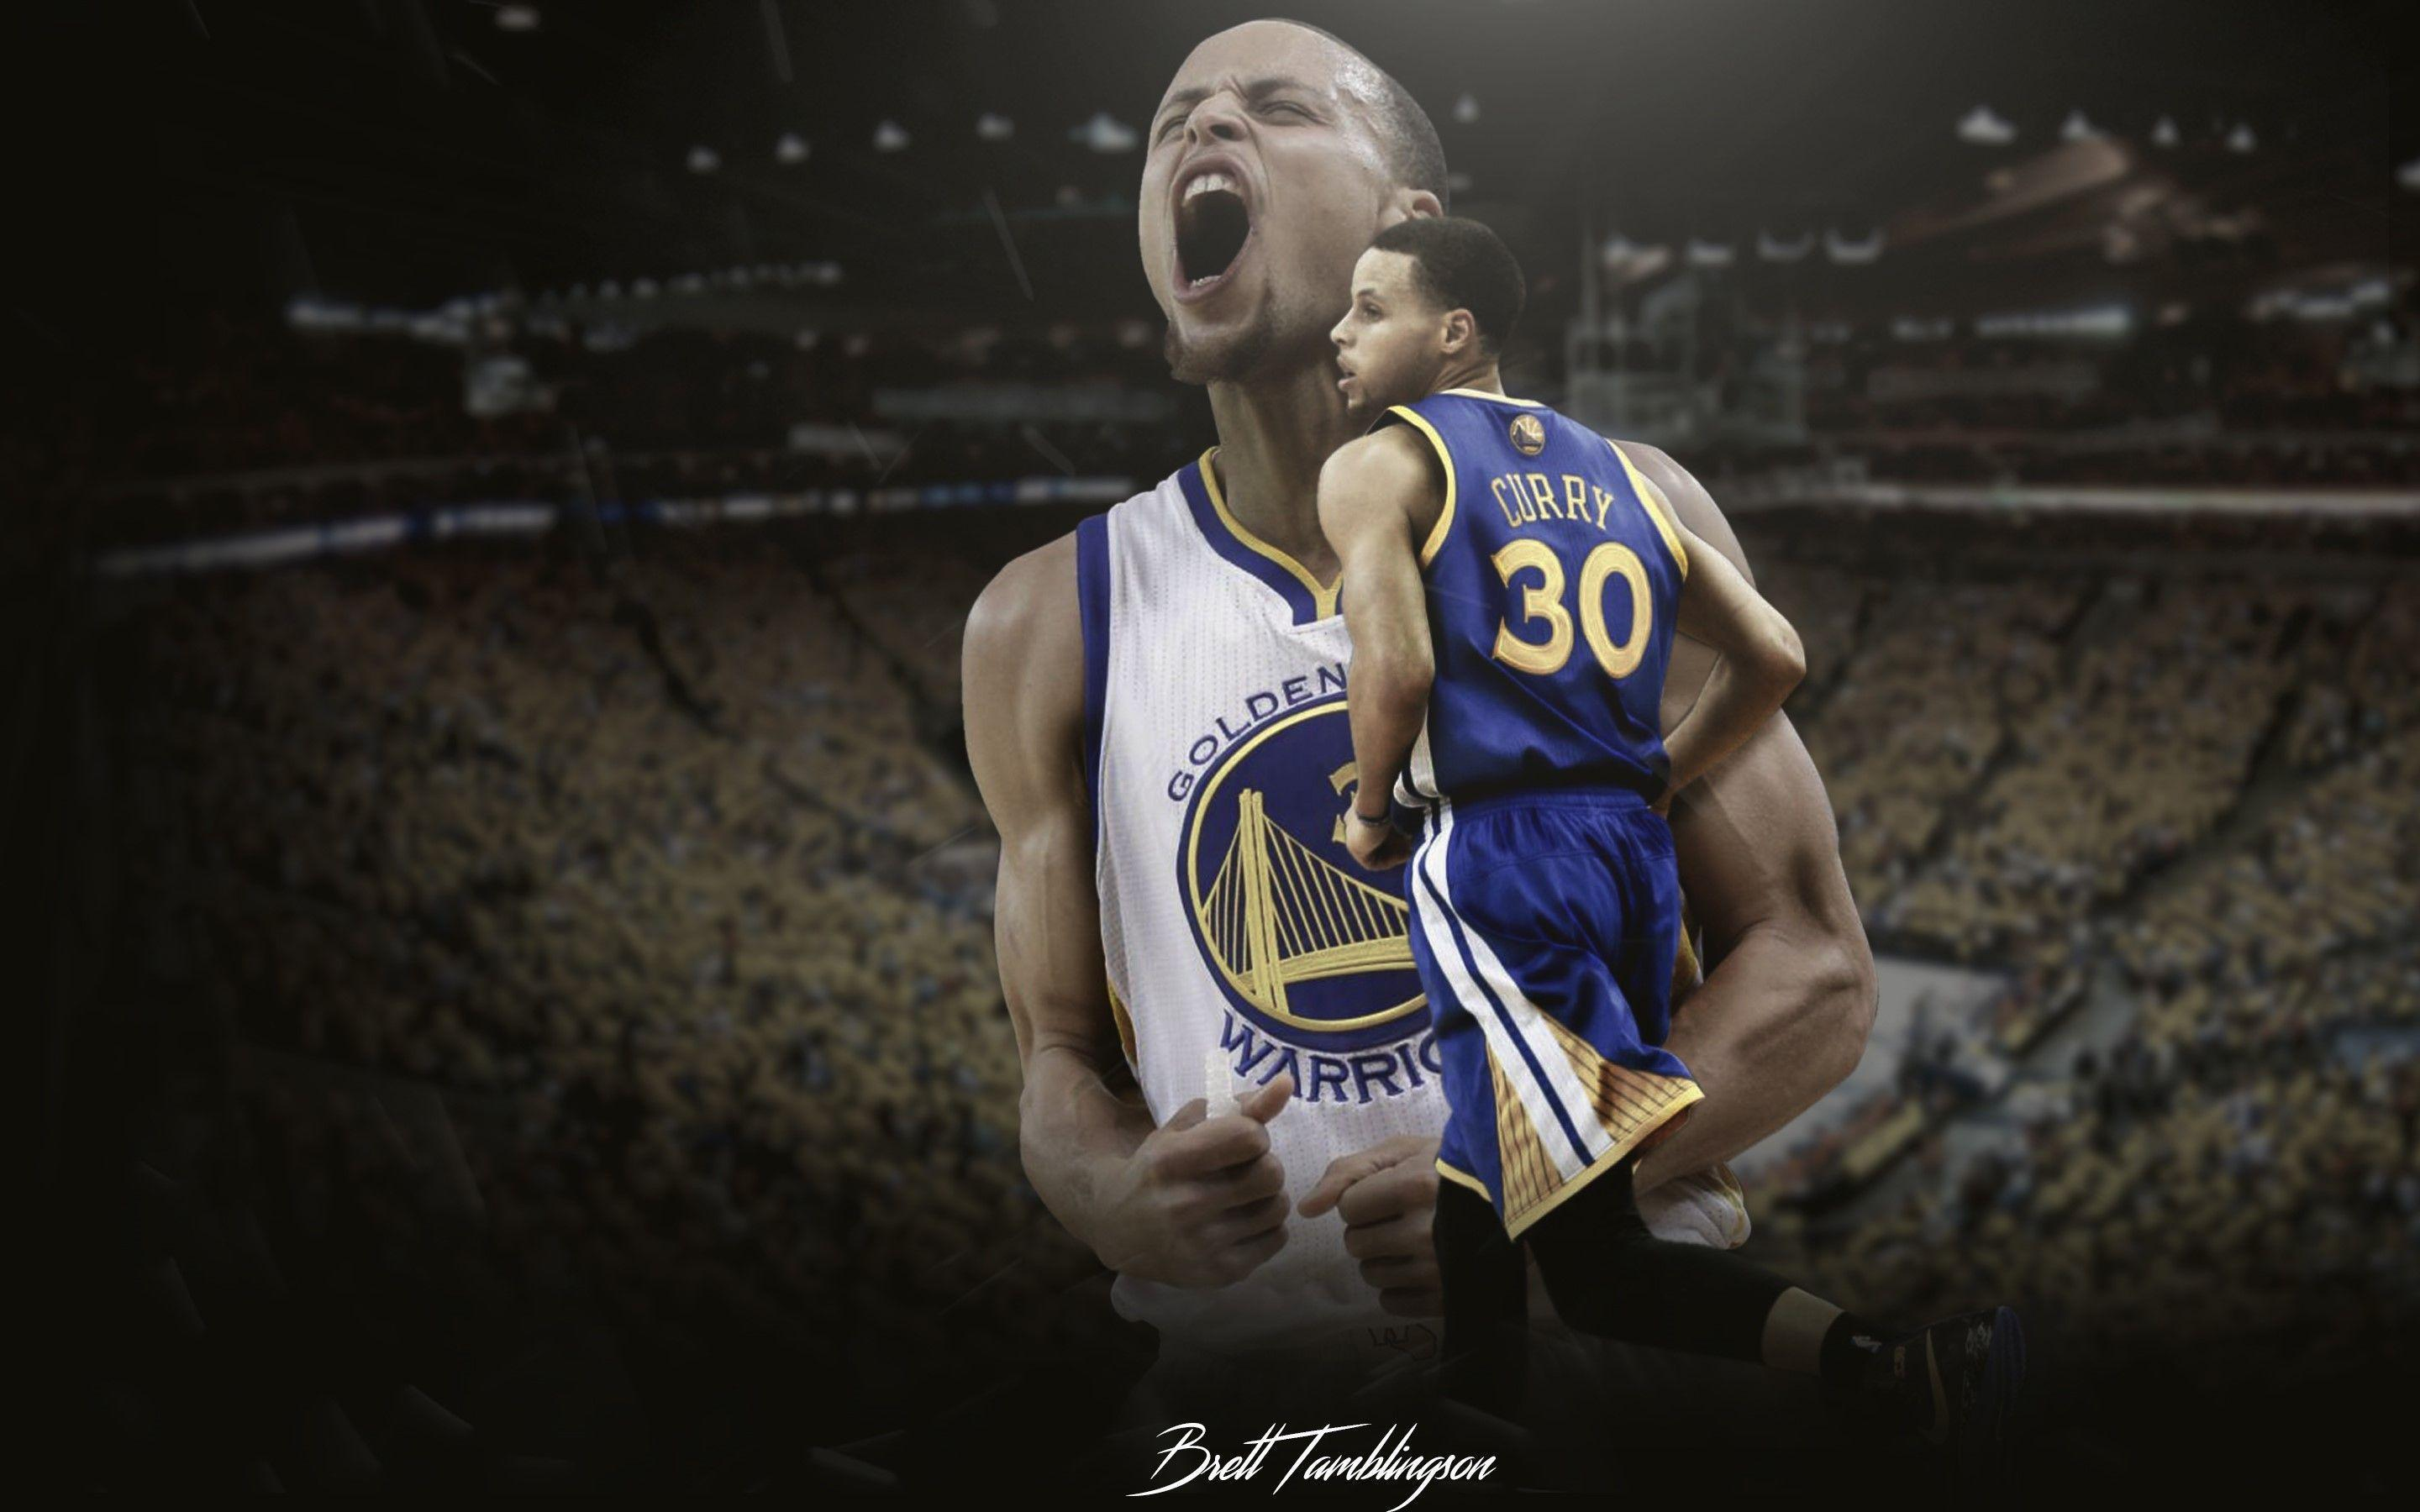 stephen curry wallpaper beautiful sl3wallpaperil.com | Free ...